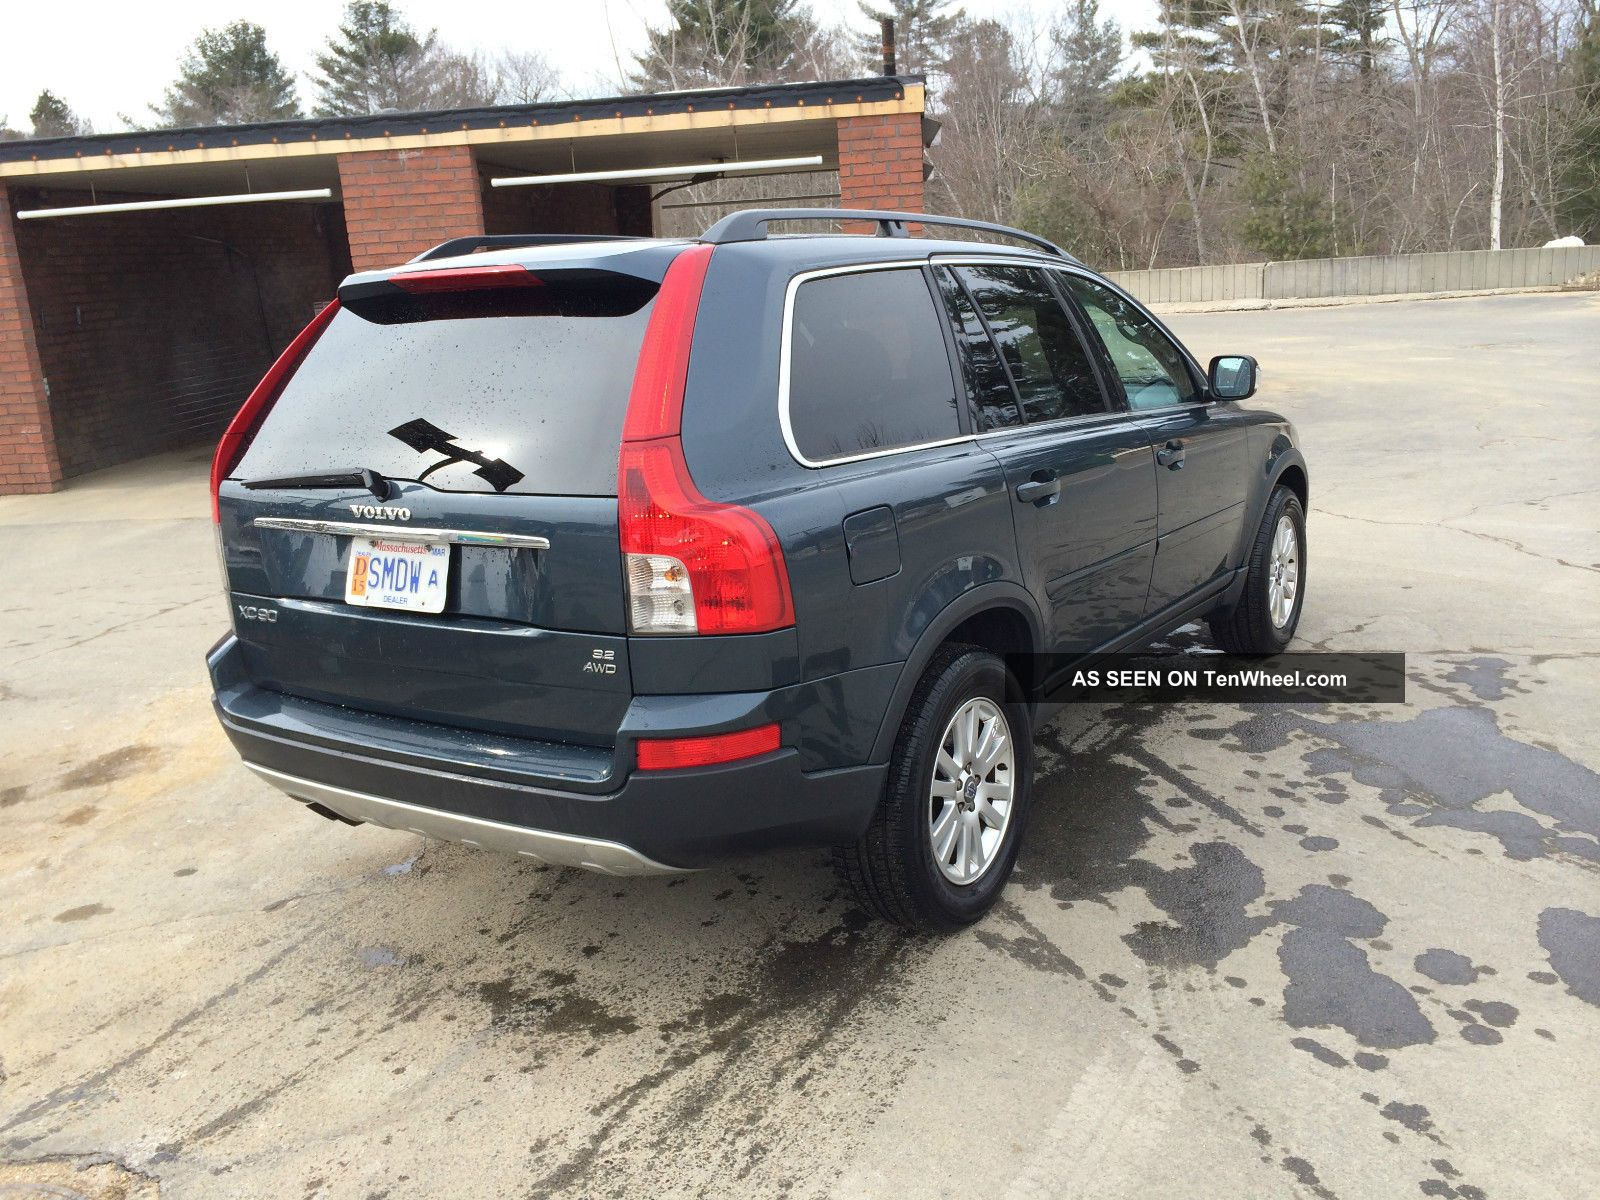 2008 volvo xc90 3 2 awd suv remarkable shape all around. Black Bedroom Furniture Sets. Home Design Ideas